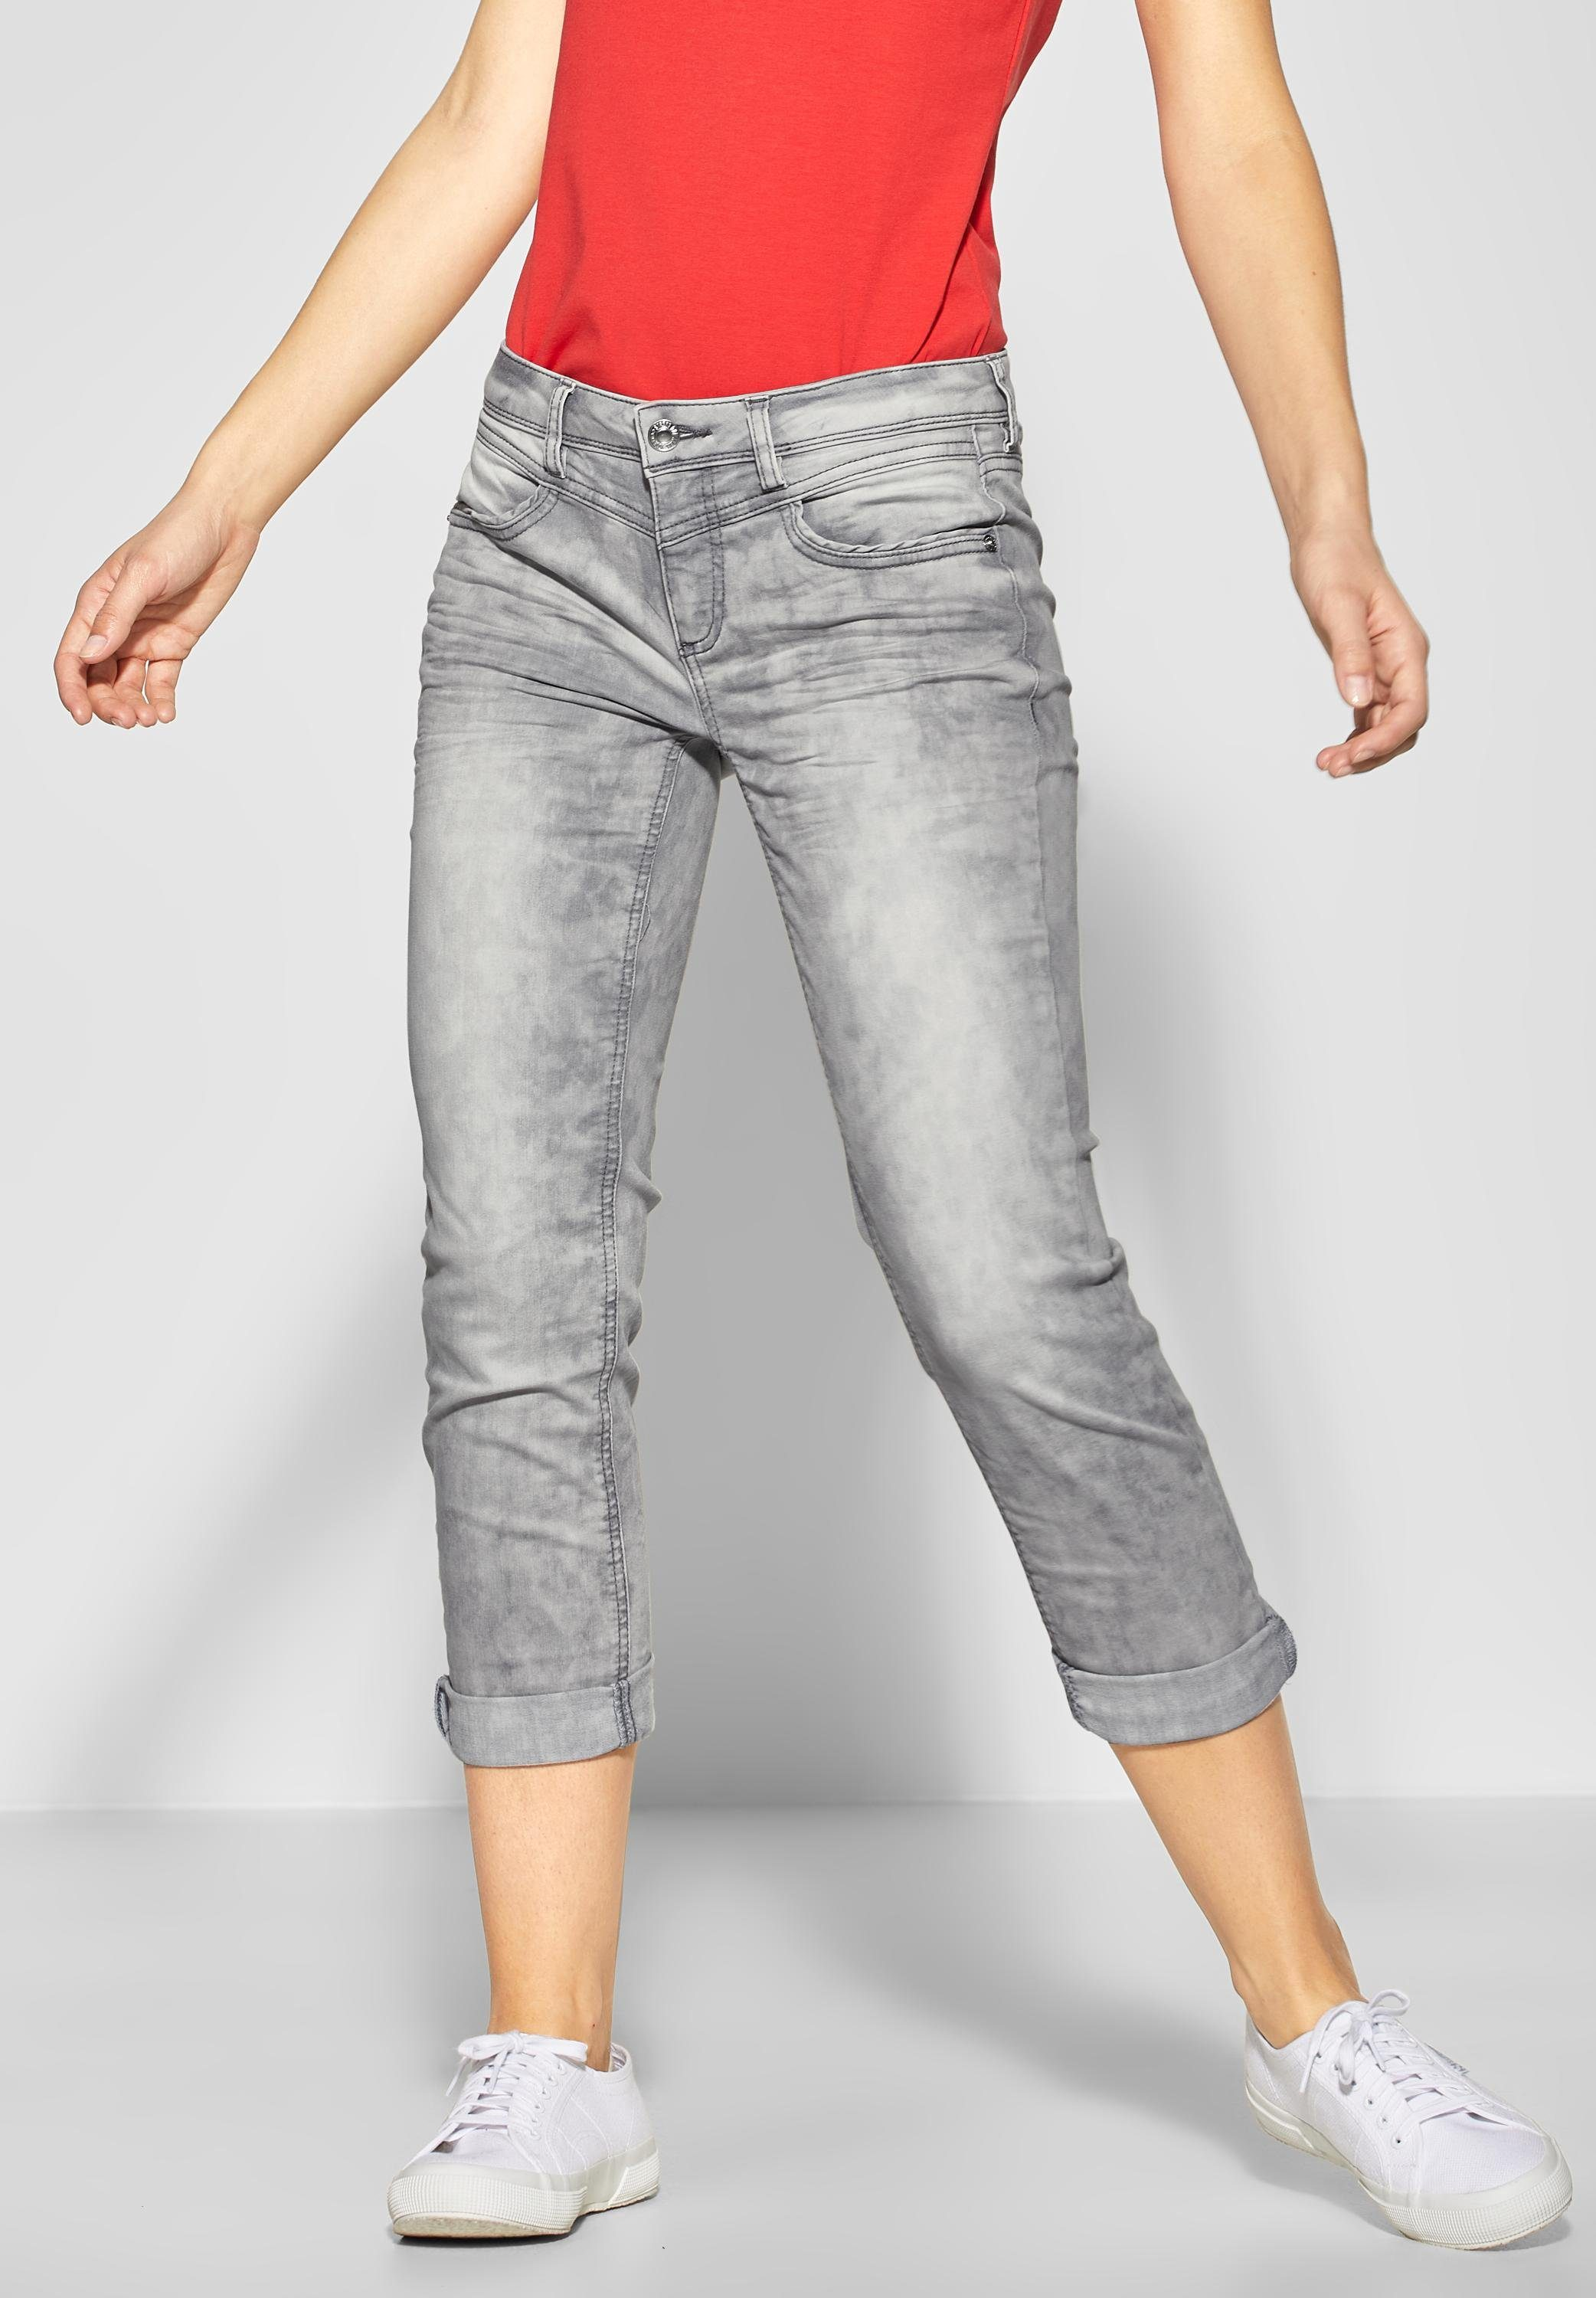 STREET ONE Comfort-fit-Jeans in grauer Waschung